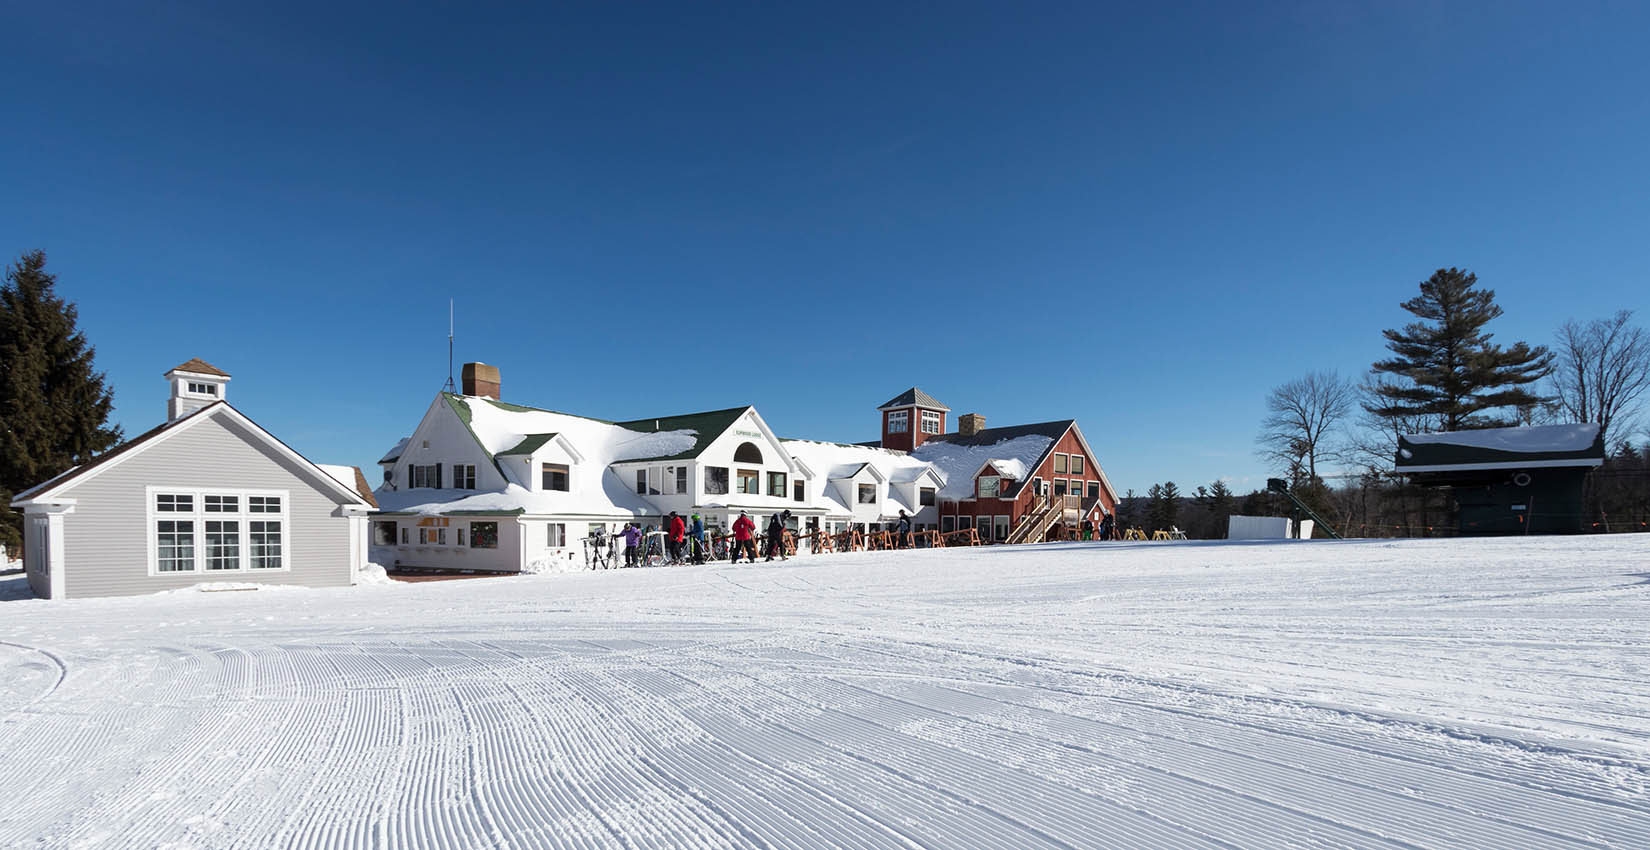 Ragged Mountain Resort: Premier New England Skiing